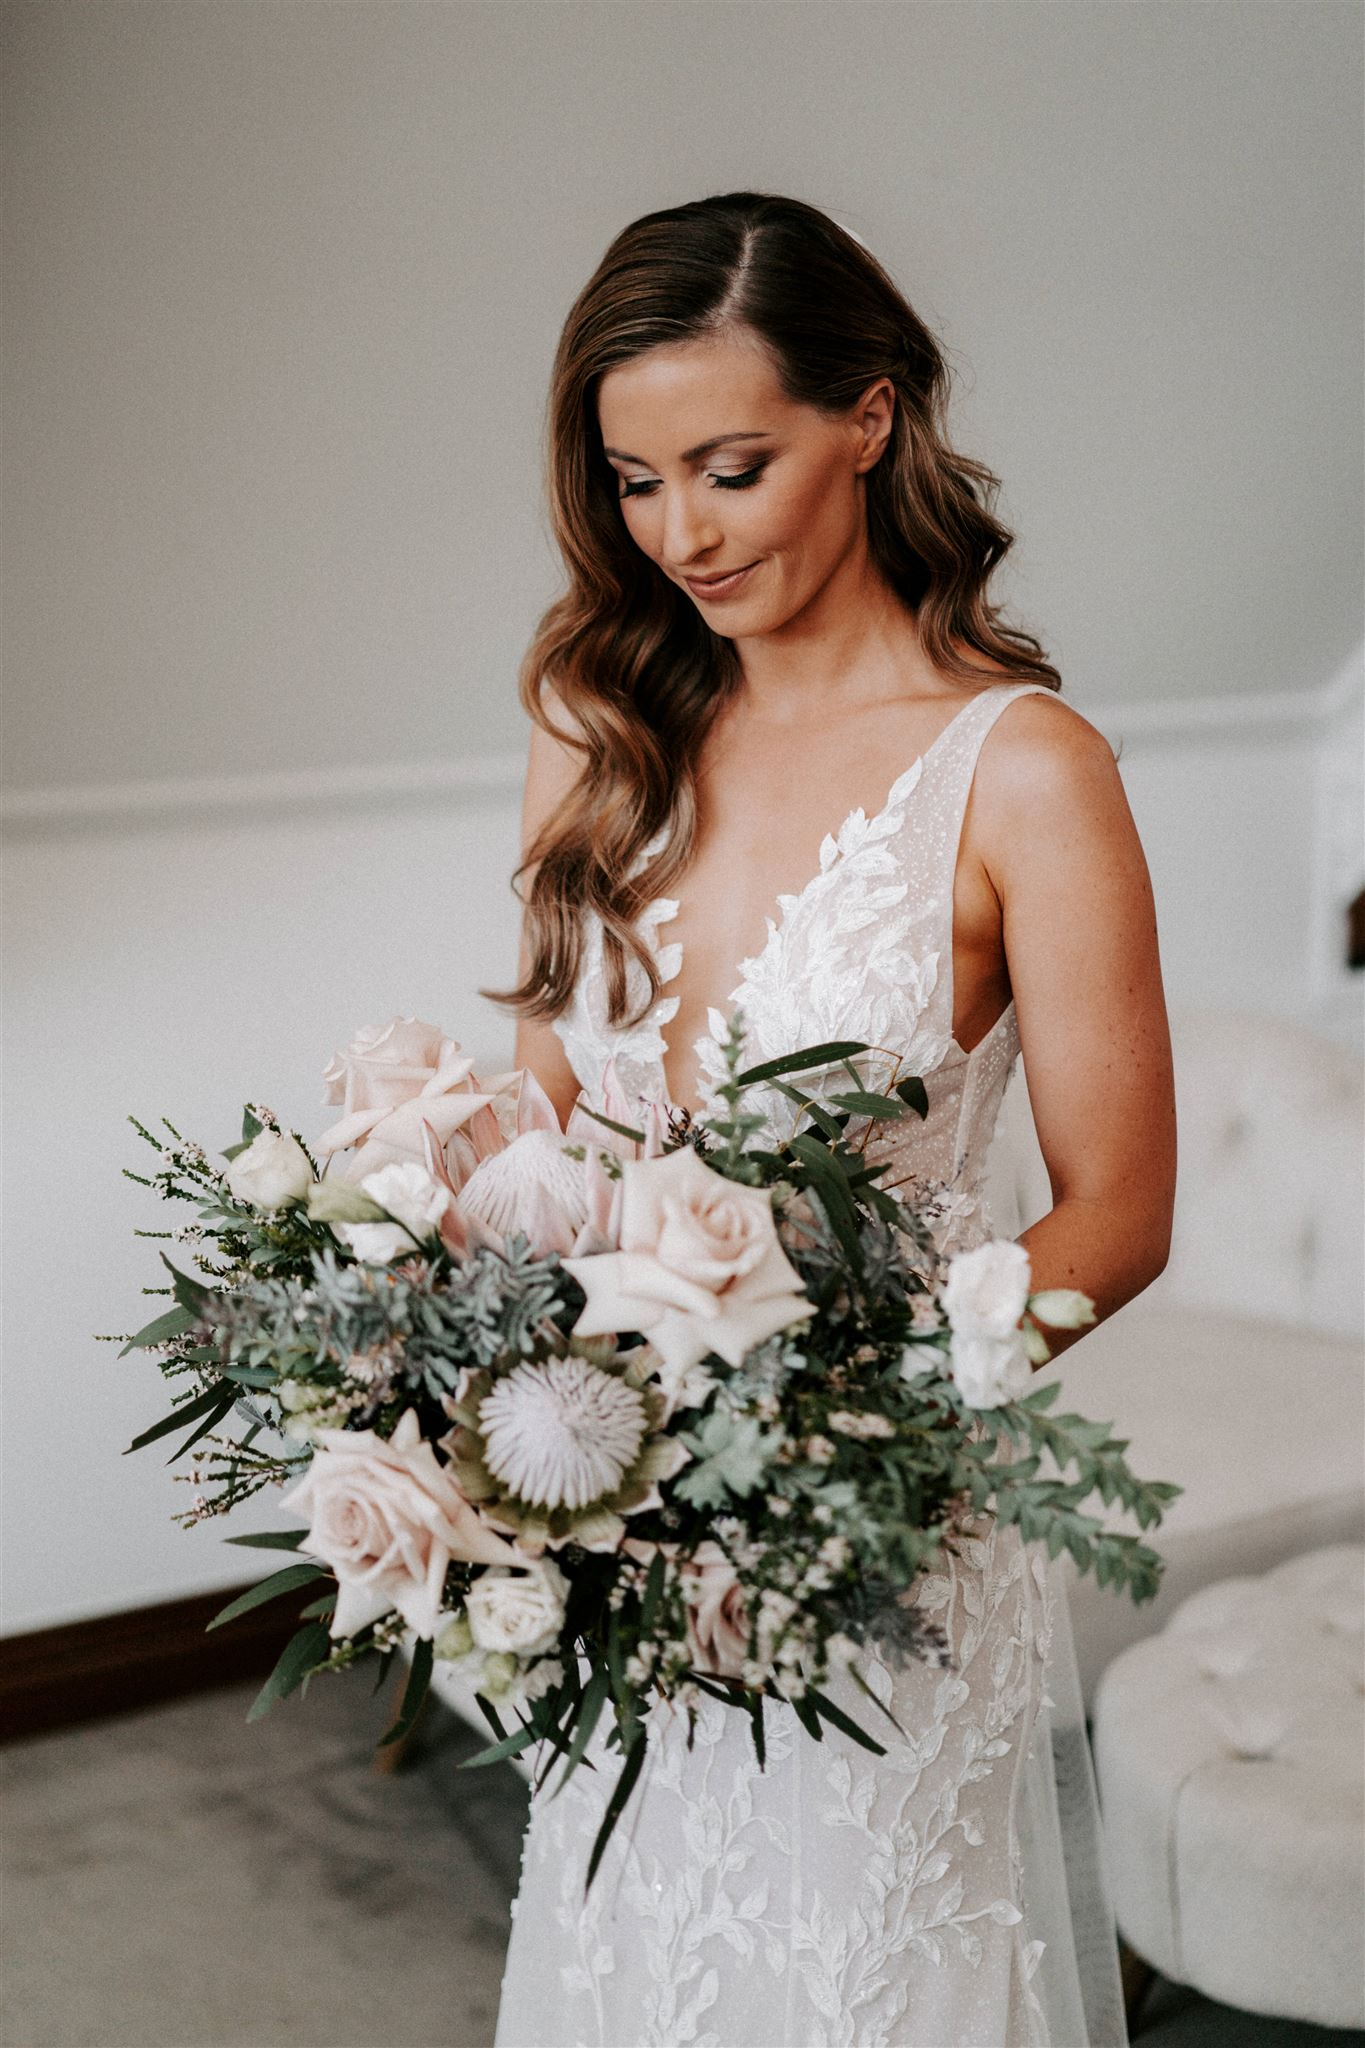 Romantic rustic wedding bouquet featuring roses and king proteas